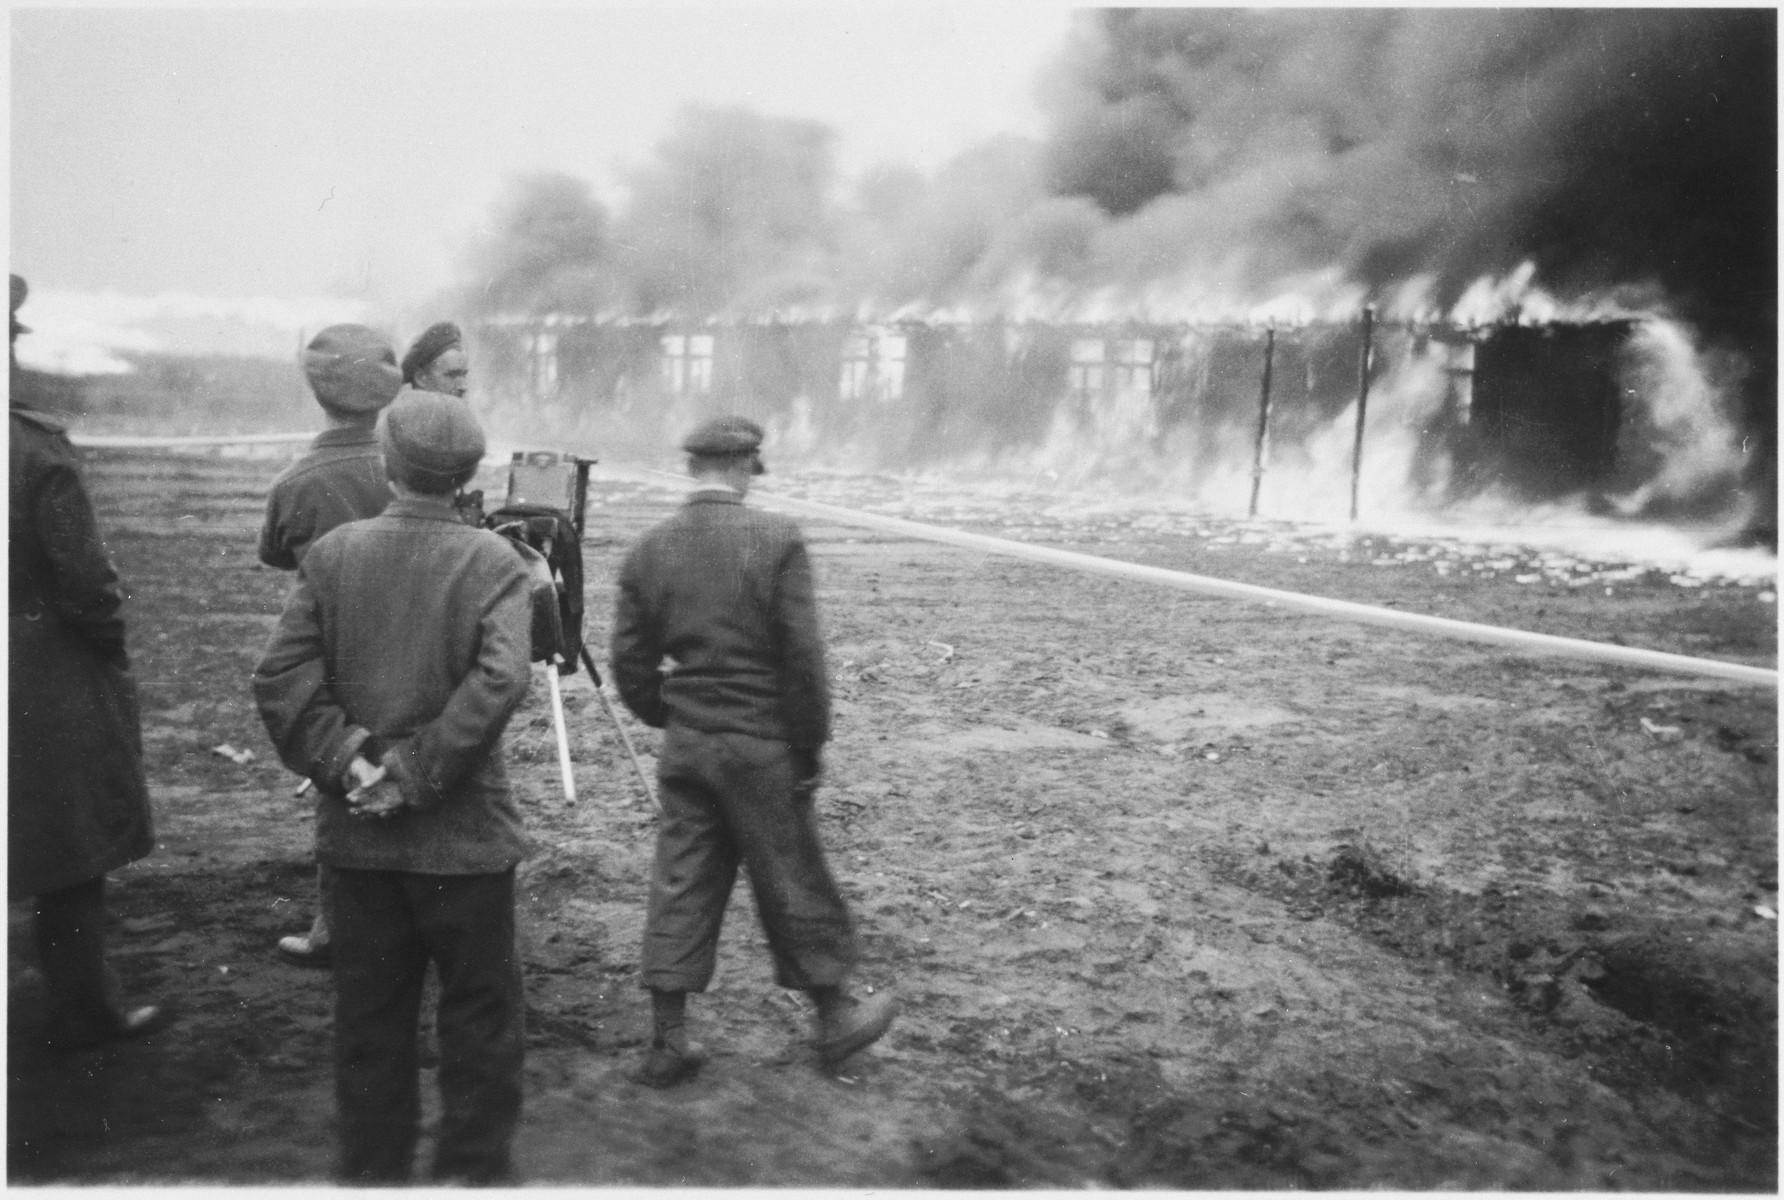 British soldiers watch as fire consumes a barracks in the Bergen-Belsen concentration camp.  The barracks were burned to control the spread of epidemics.